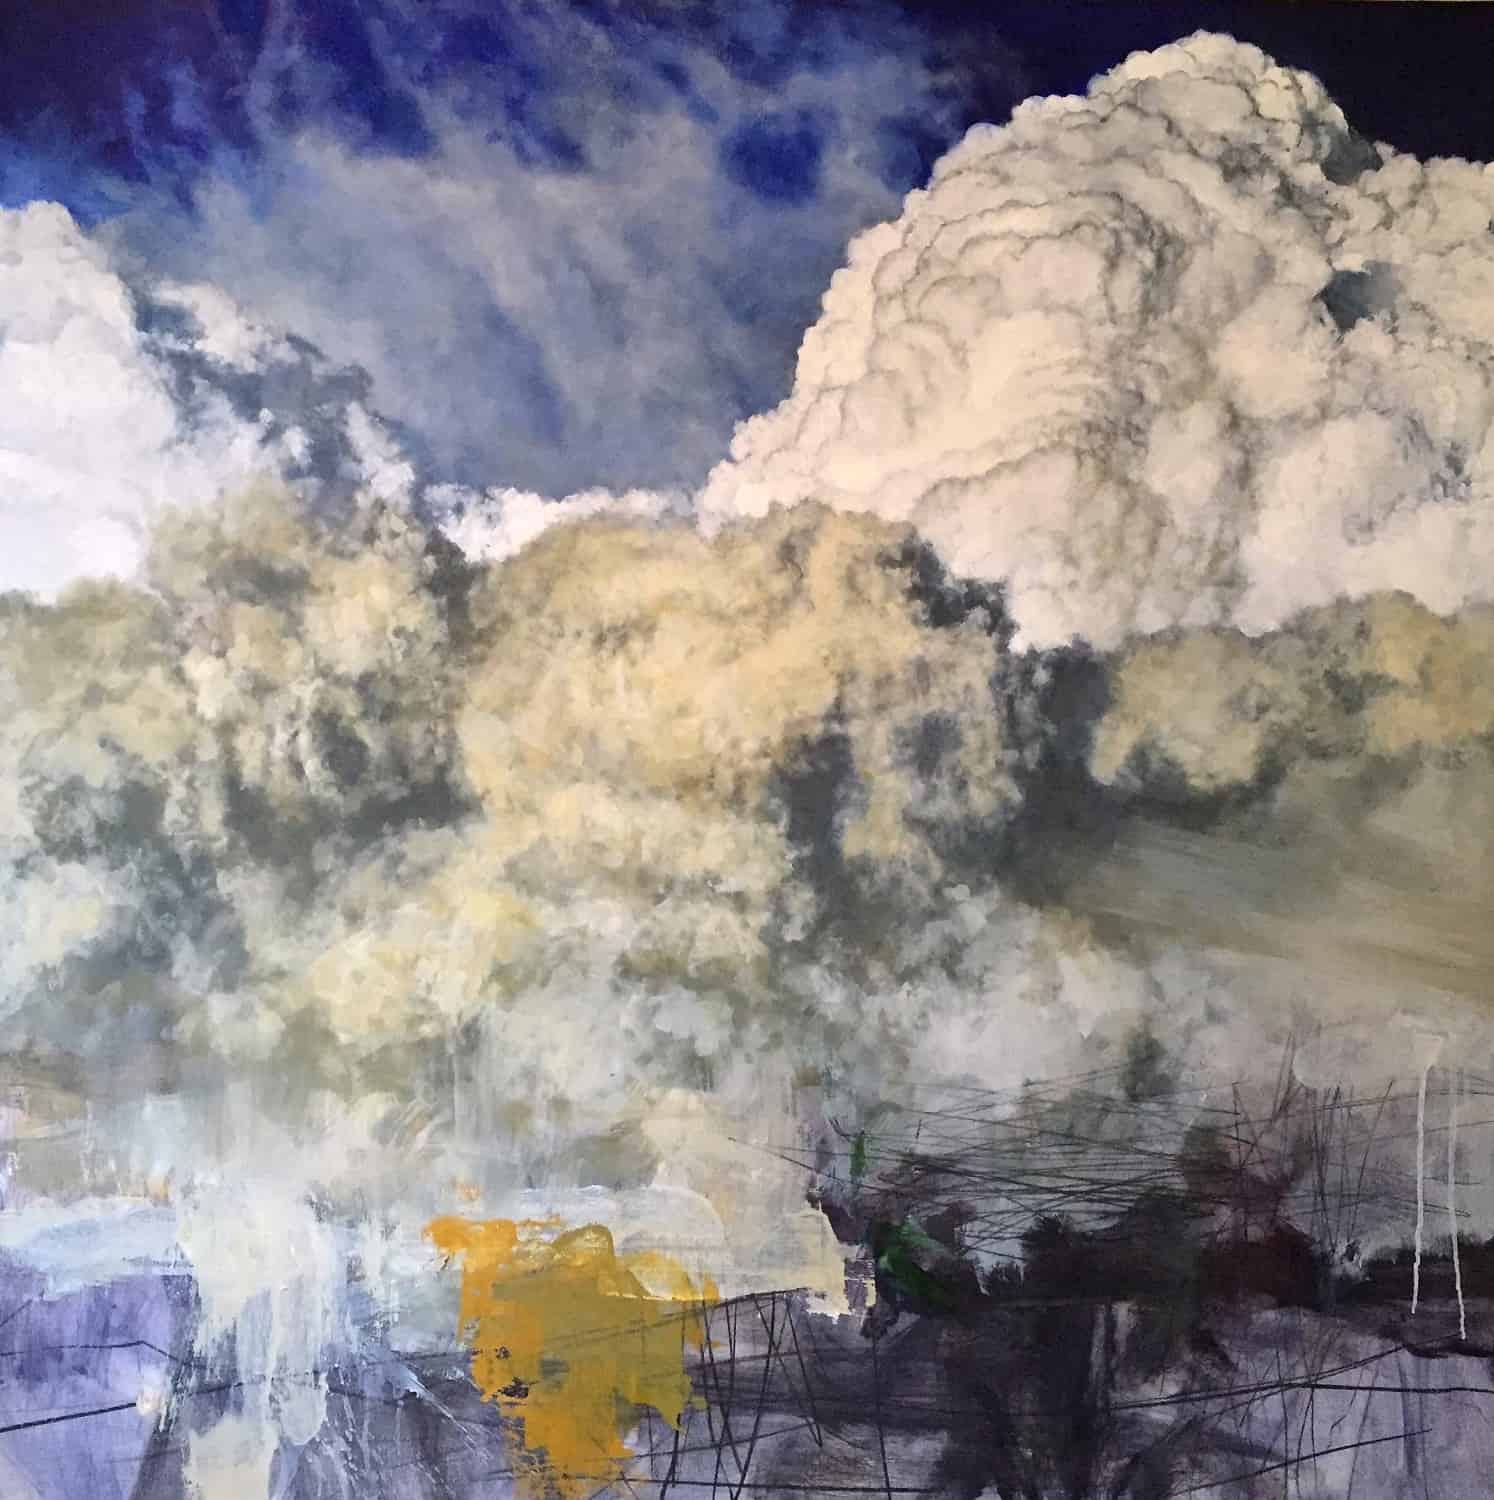 Suspension (east sky) II (2015), oil and charcoal on panel, 42 by 42 inches